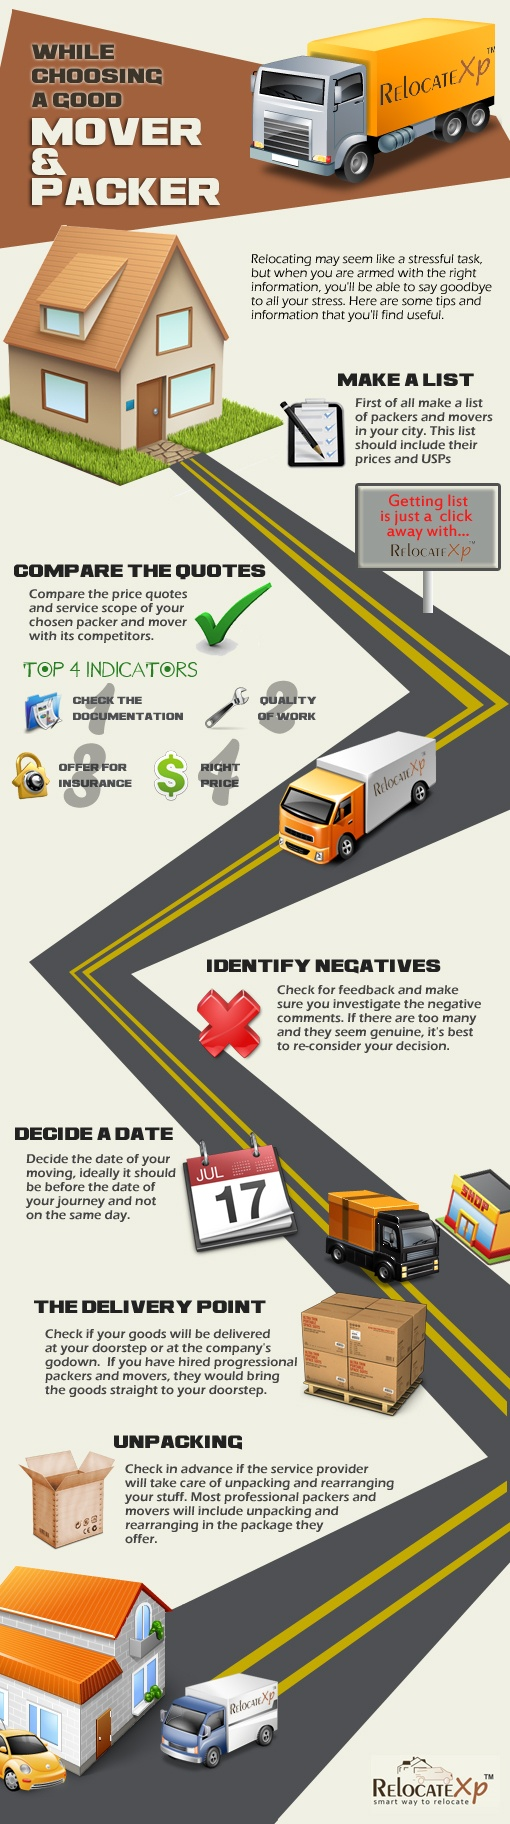 How To Choose The Best Packers and Movers